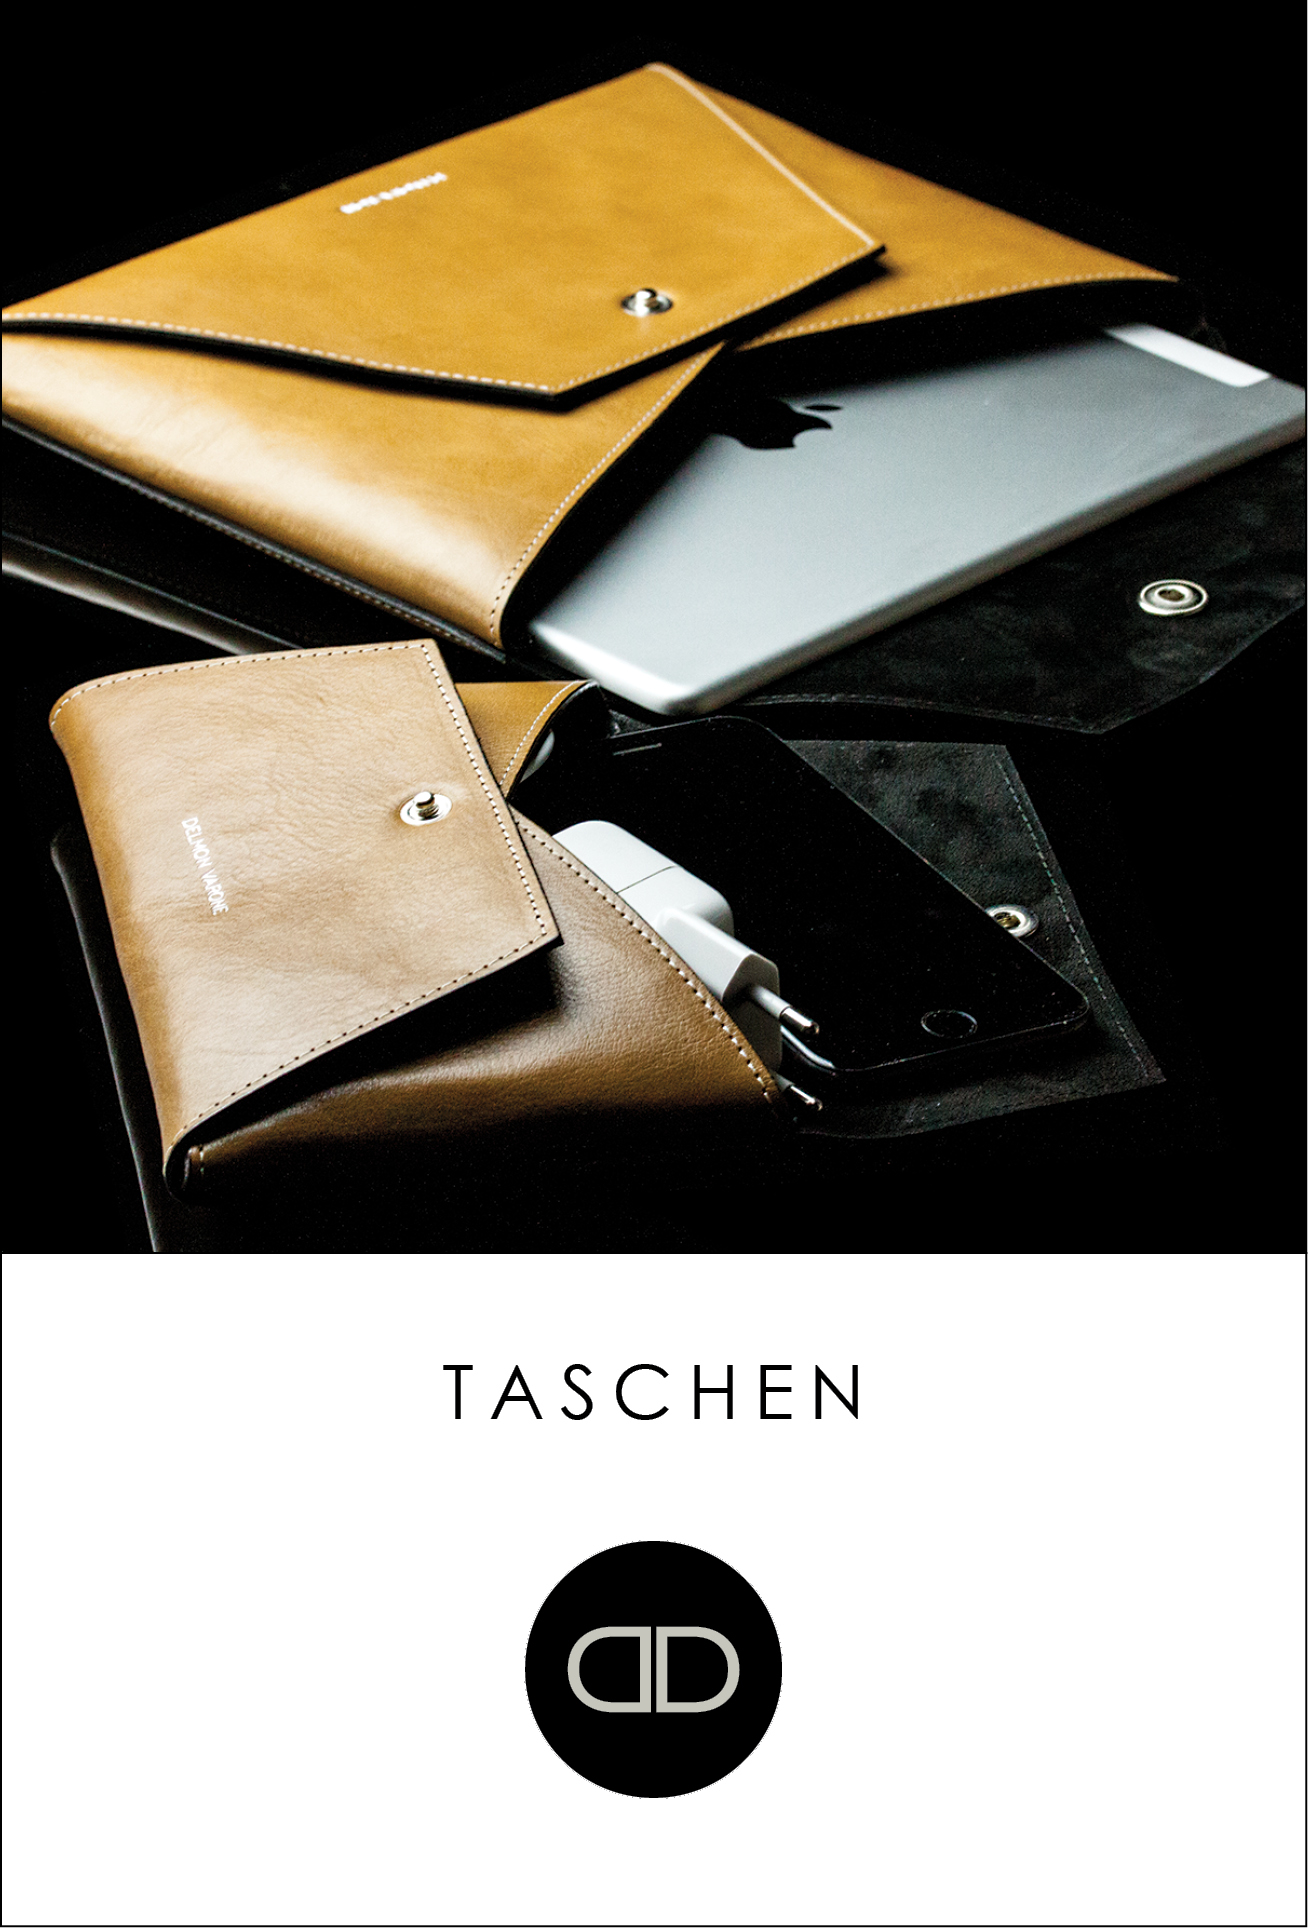 exclusive macbook iapd notebook taschen